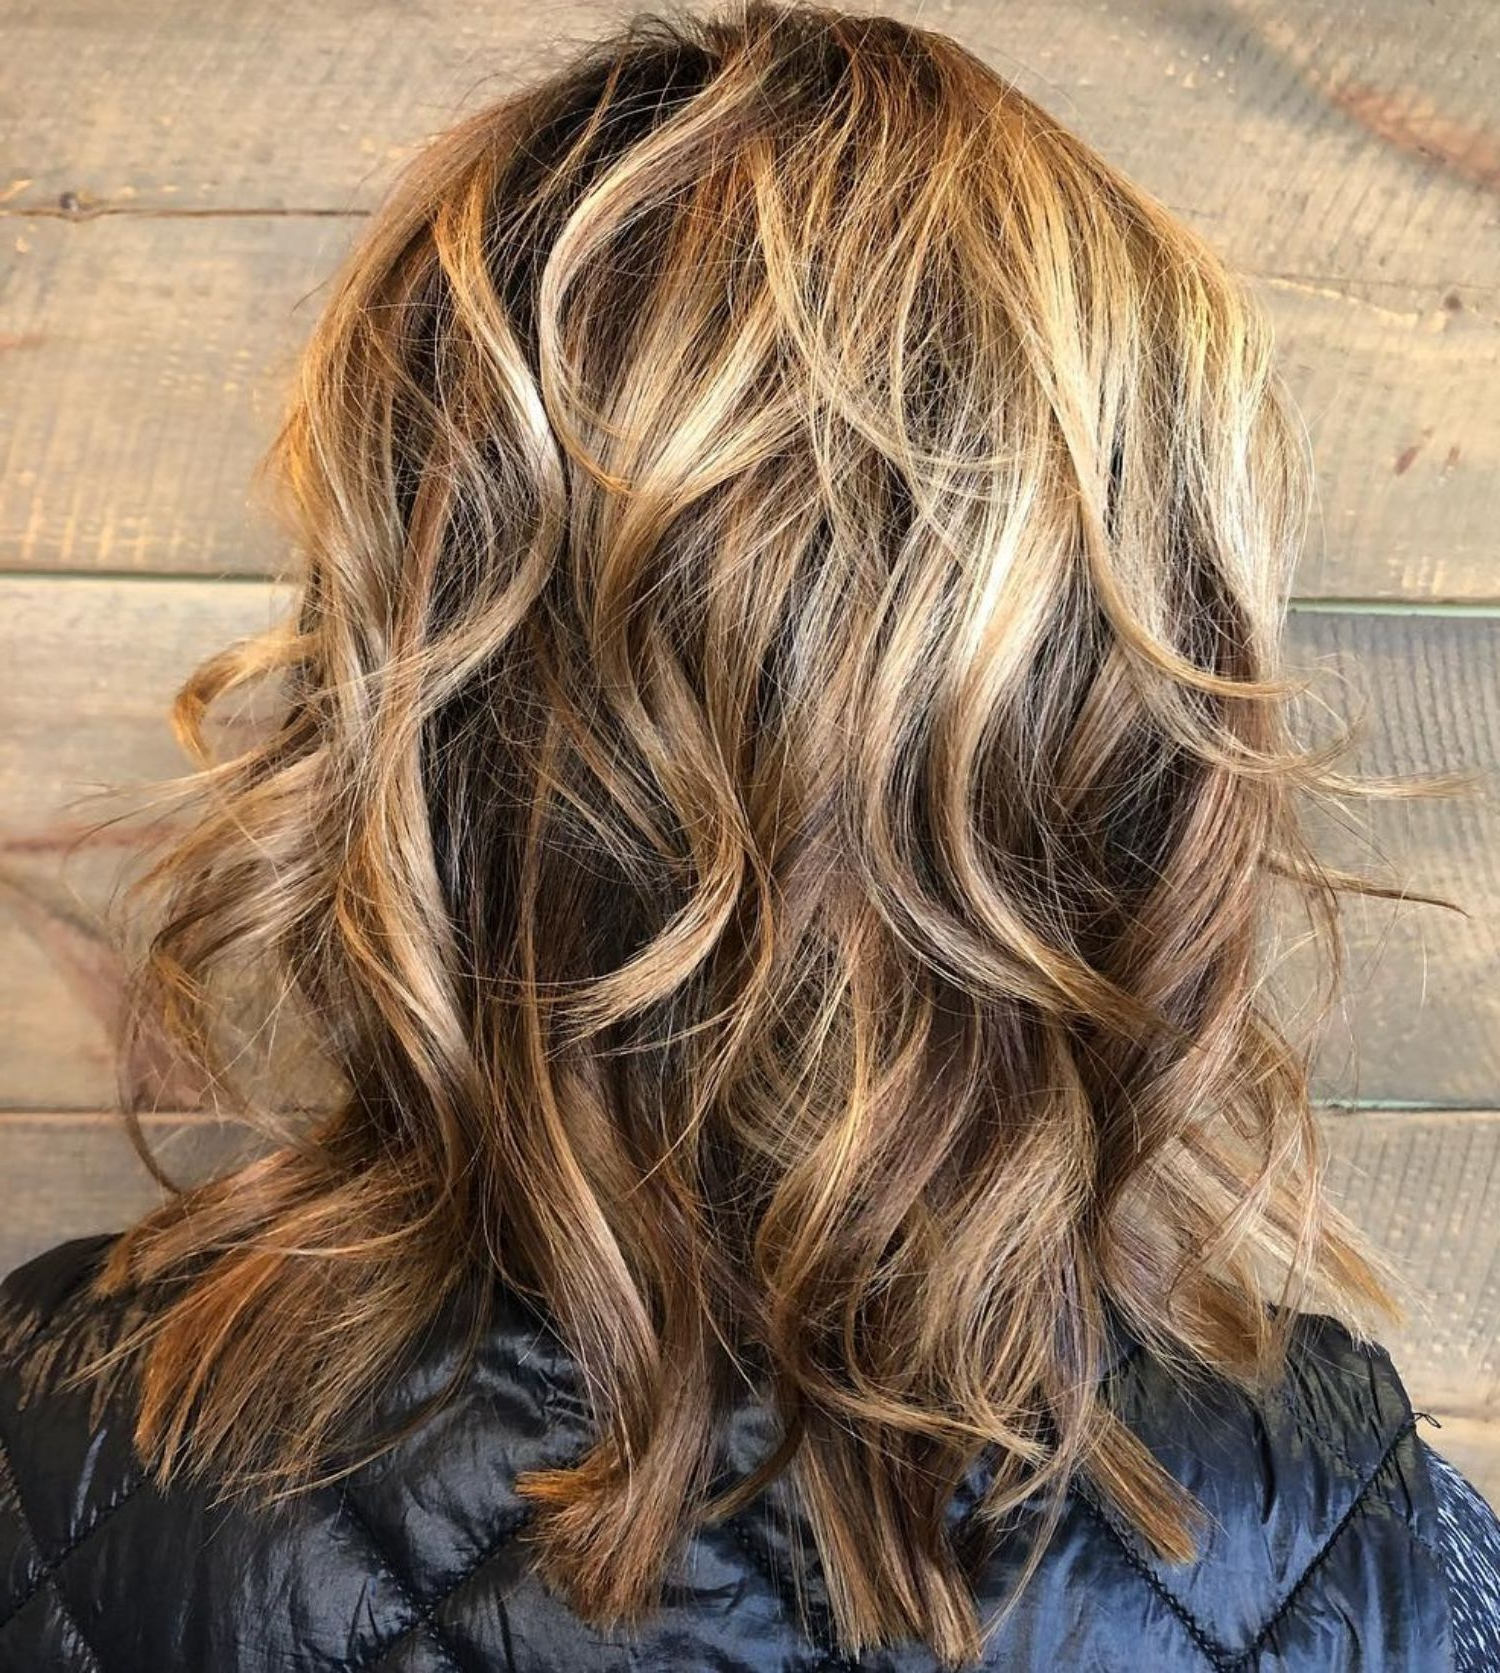 Pin On Hair Cuts I Am Thinking Of Trying Throughout Well Liked Frizzy Choppy Long Shag Hairstyles (View 15 of 20)